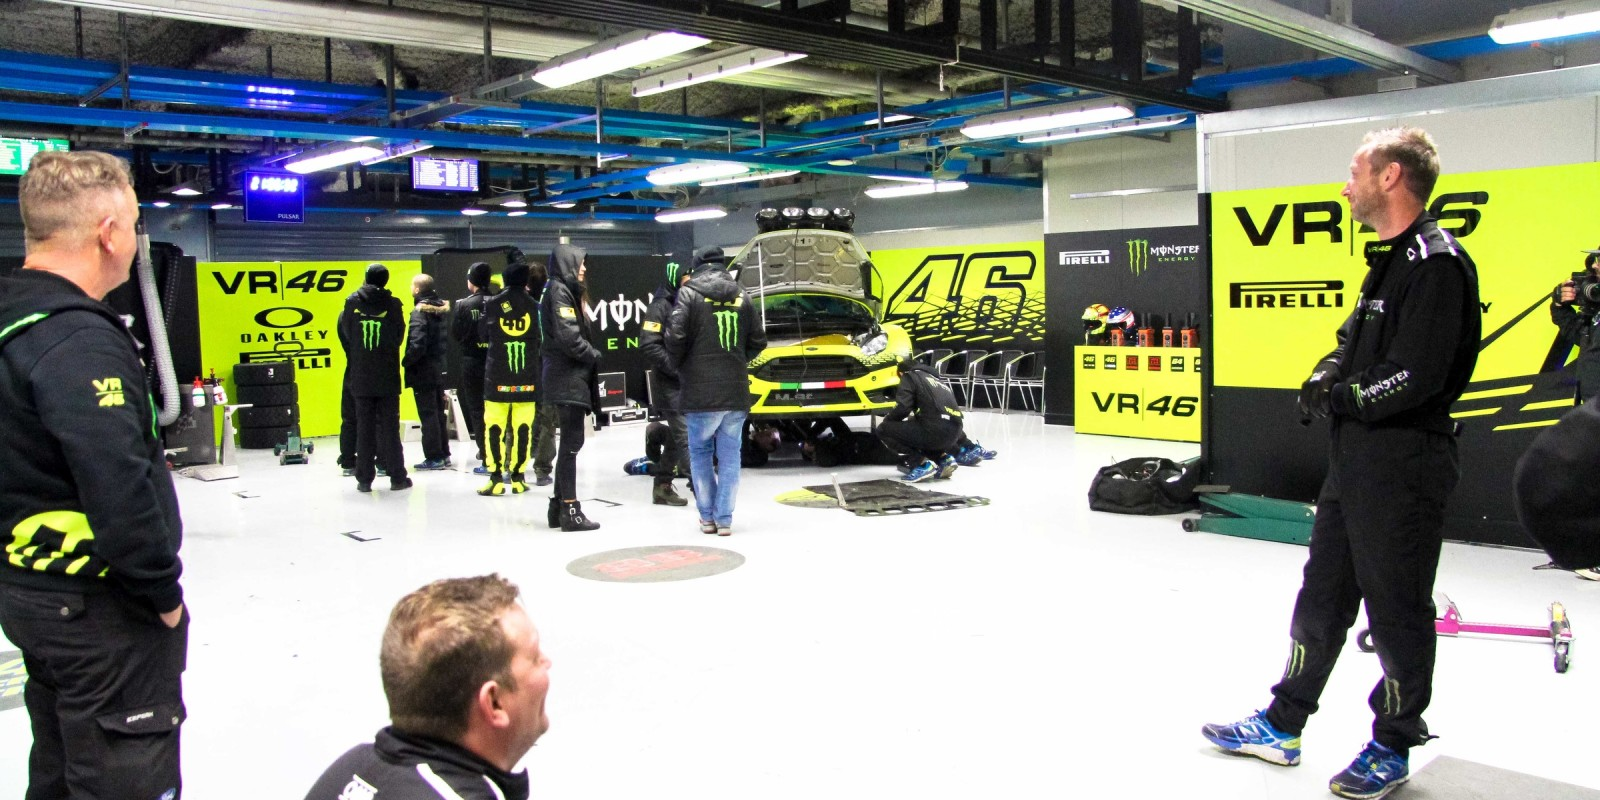 VR46 team waiting for the cars to come back